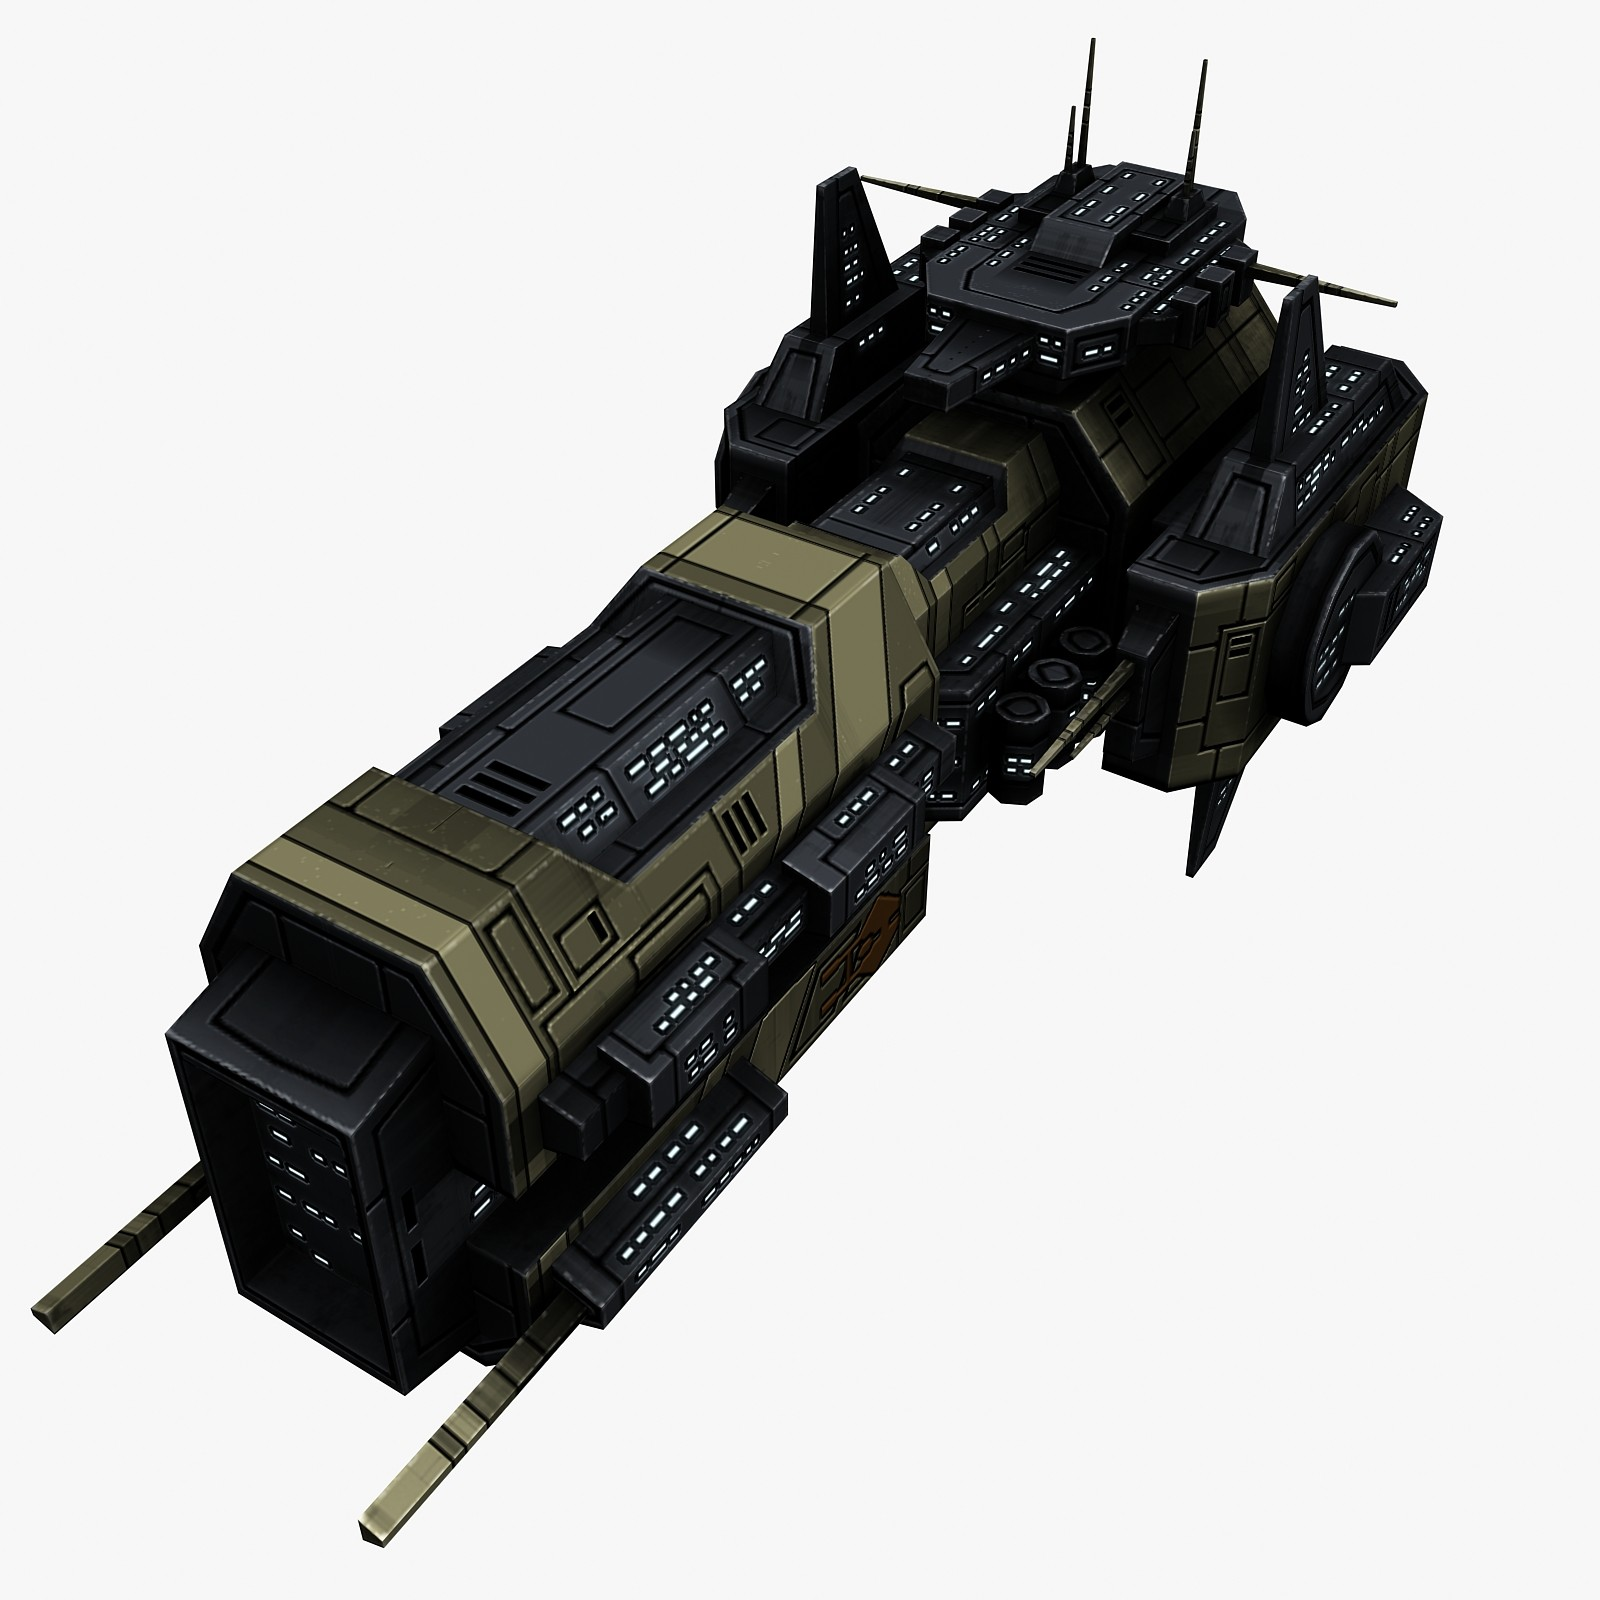 civilian_transport_spaceship_2_preview_1.jpg